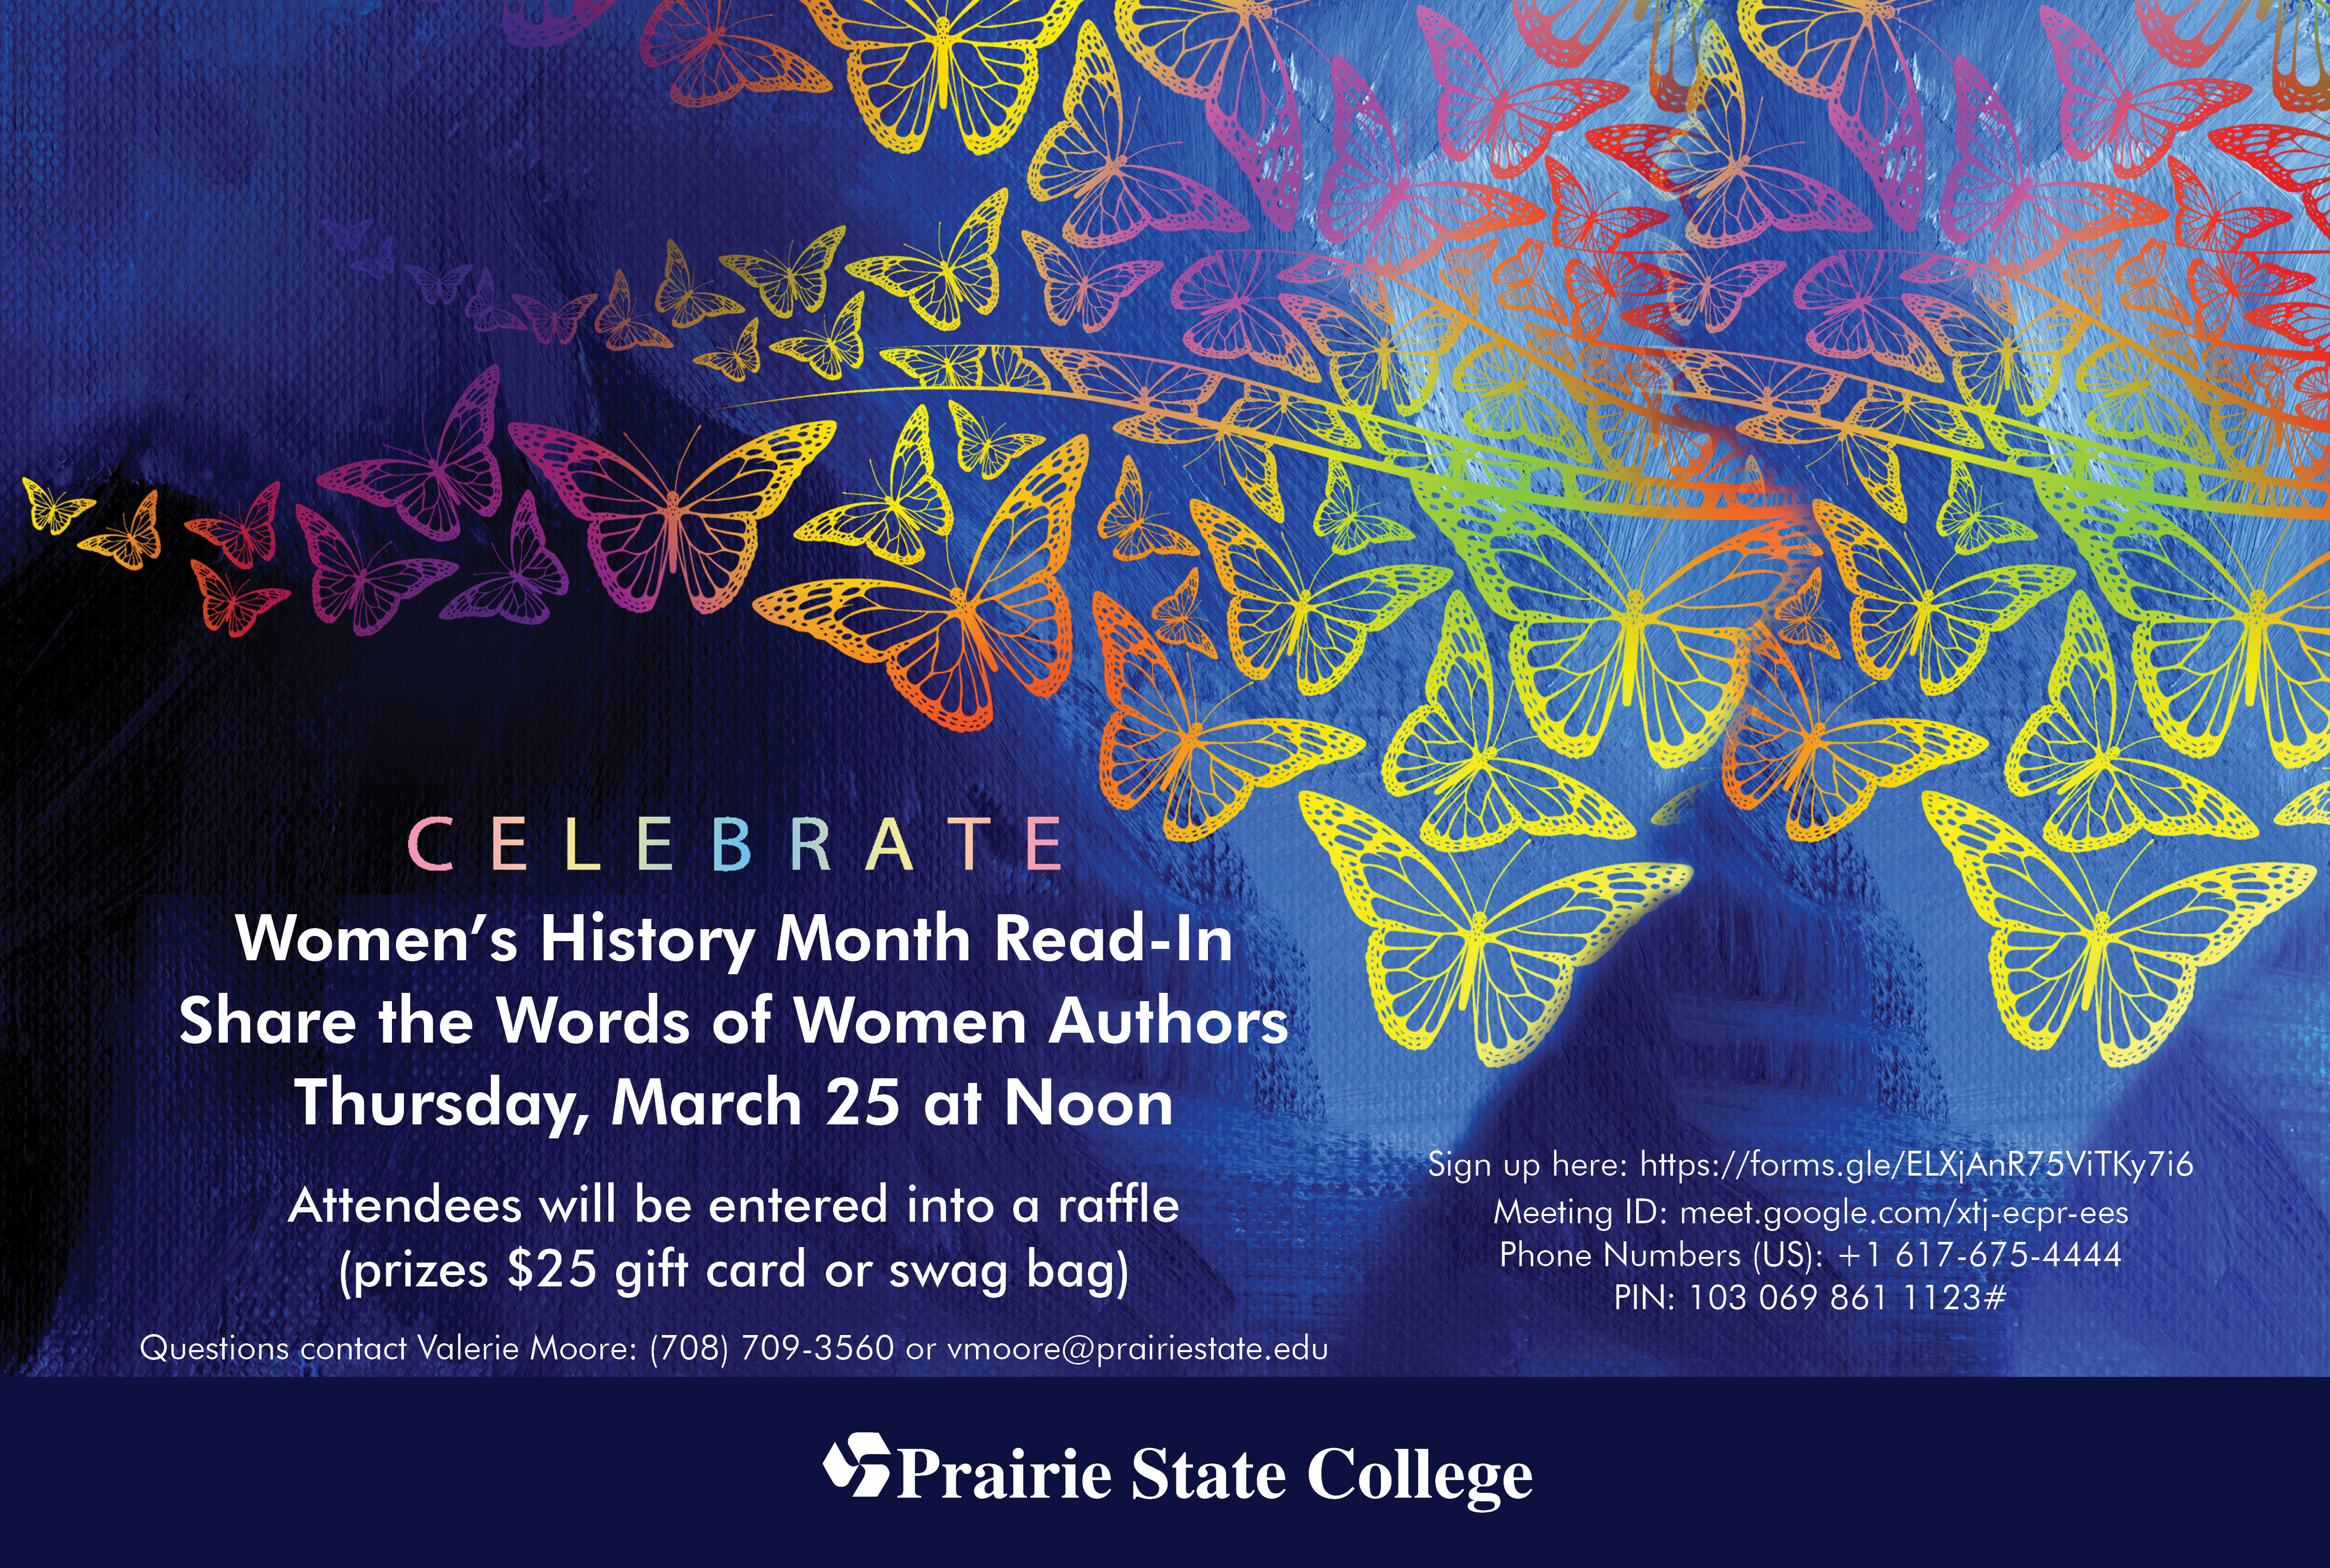 This is a flyer advertising our 2021 Women's History Month Read-In